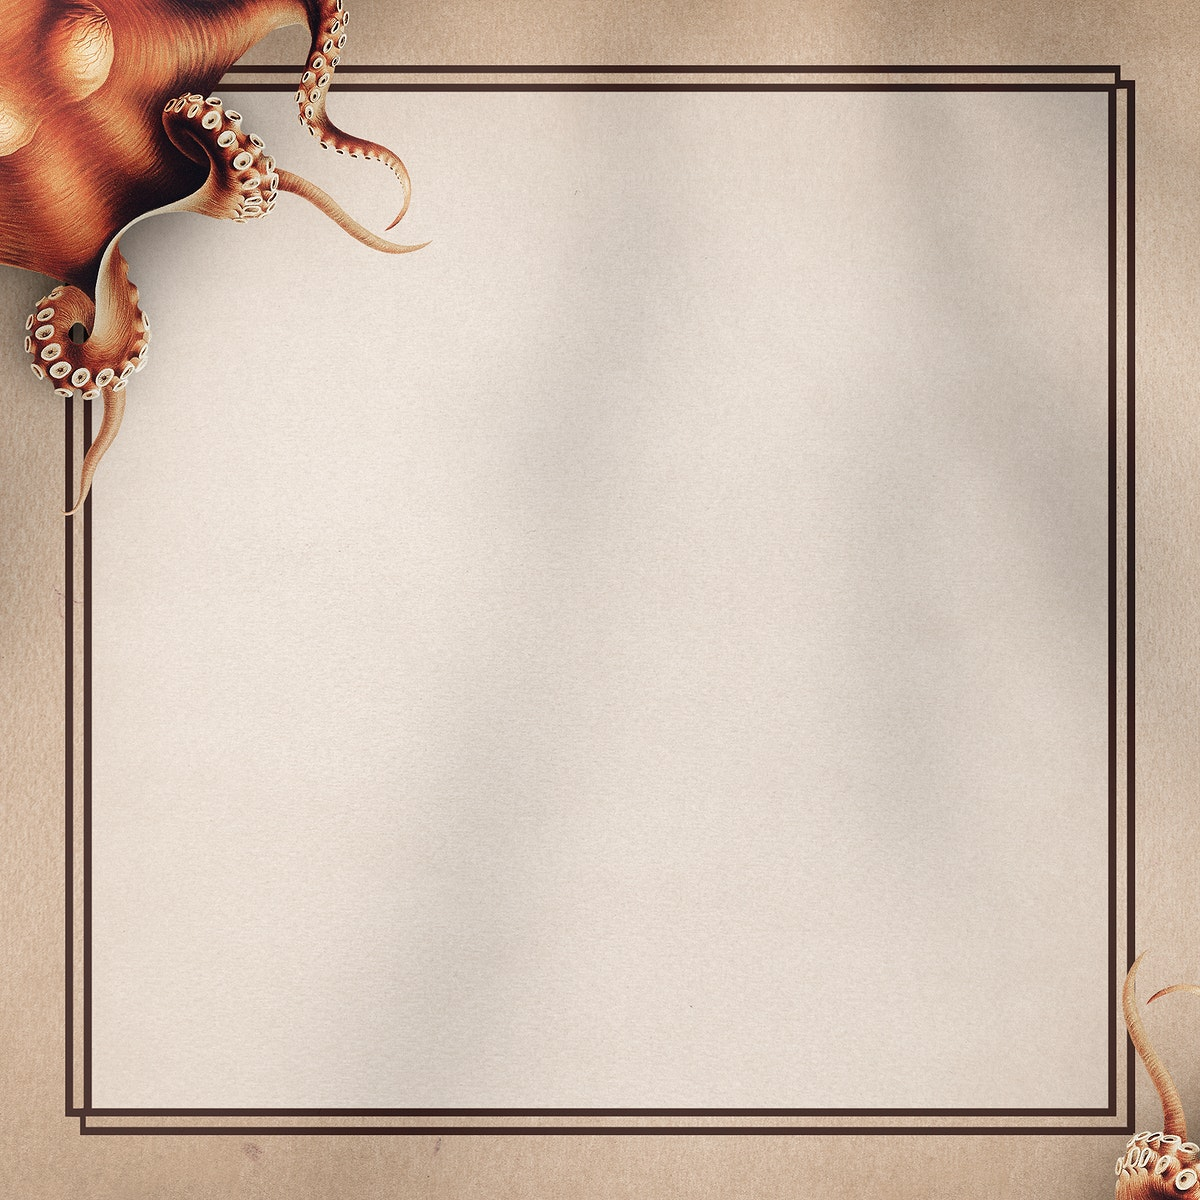 Hand drawn octopus pattern on a brown background illustration